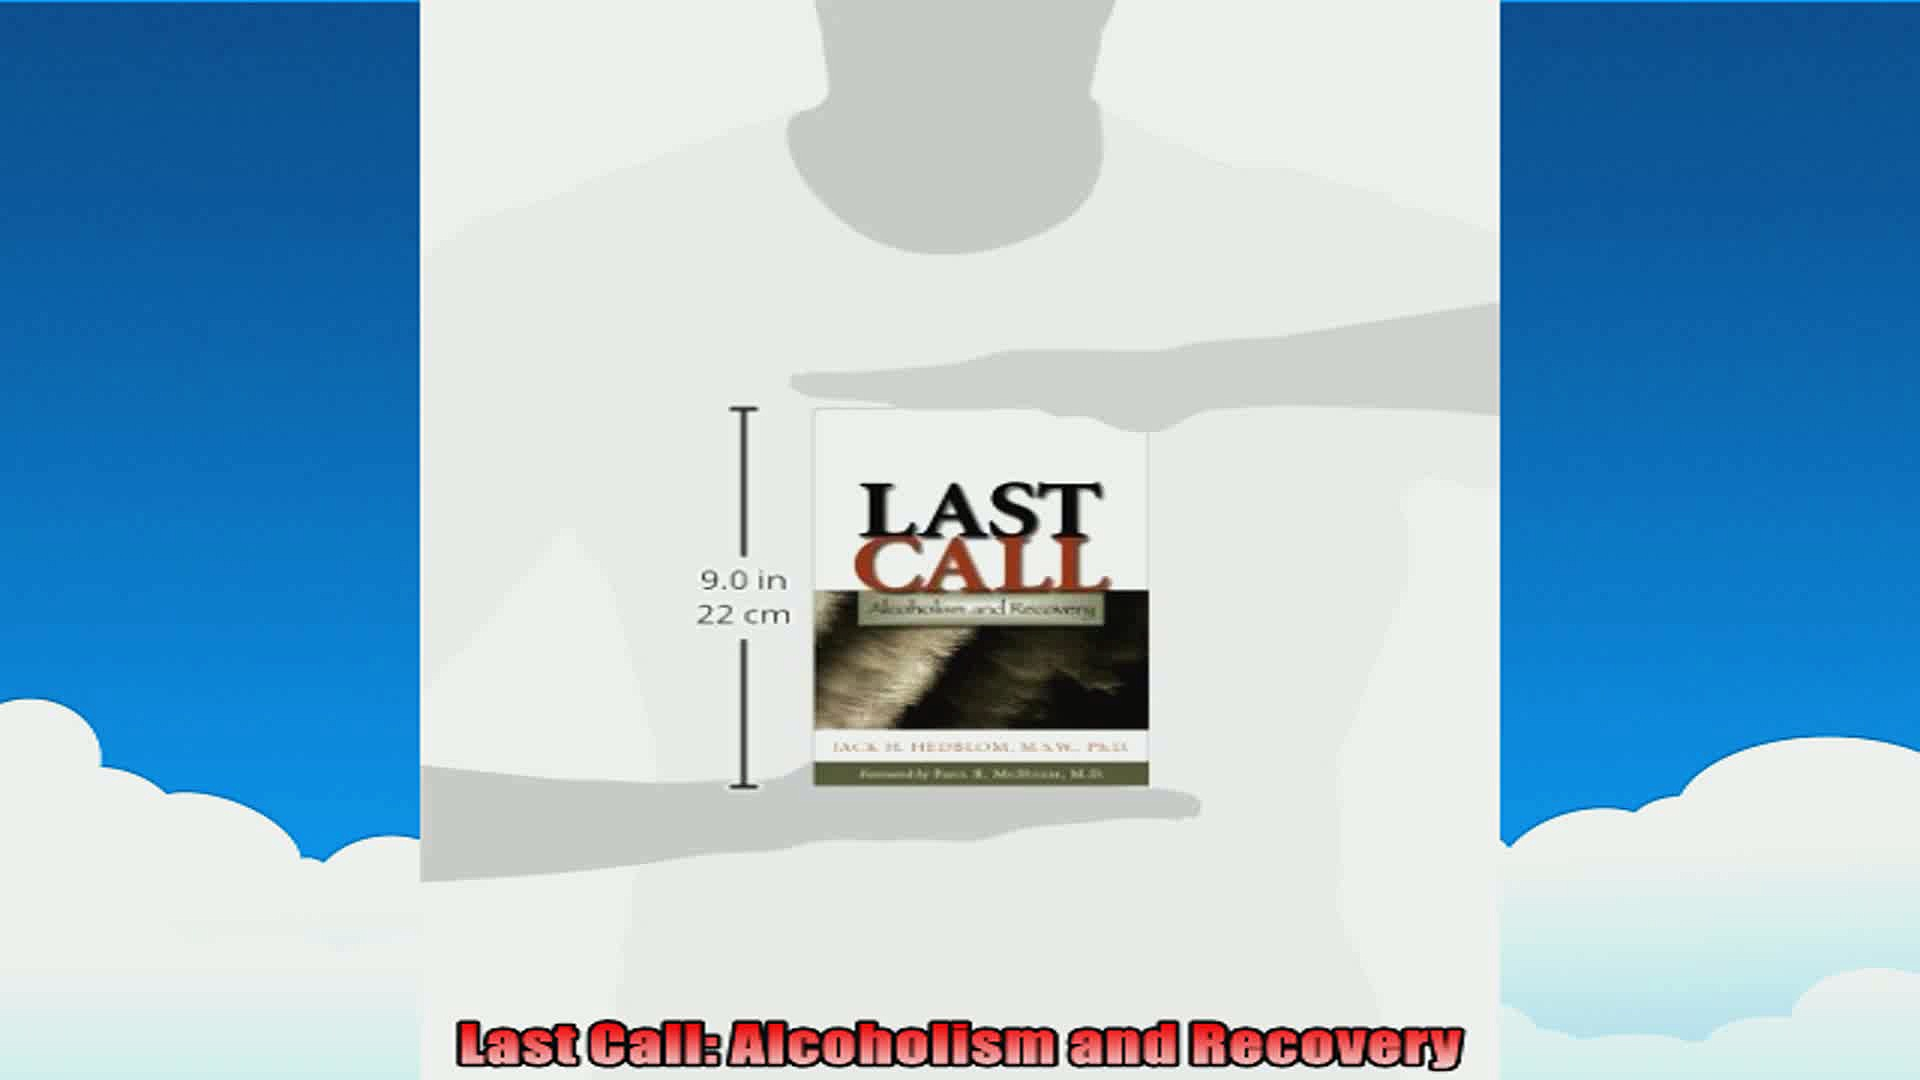 Last Call Alcoholism and Recovery